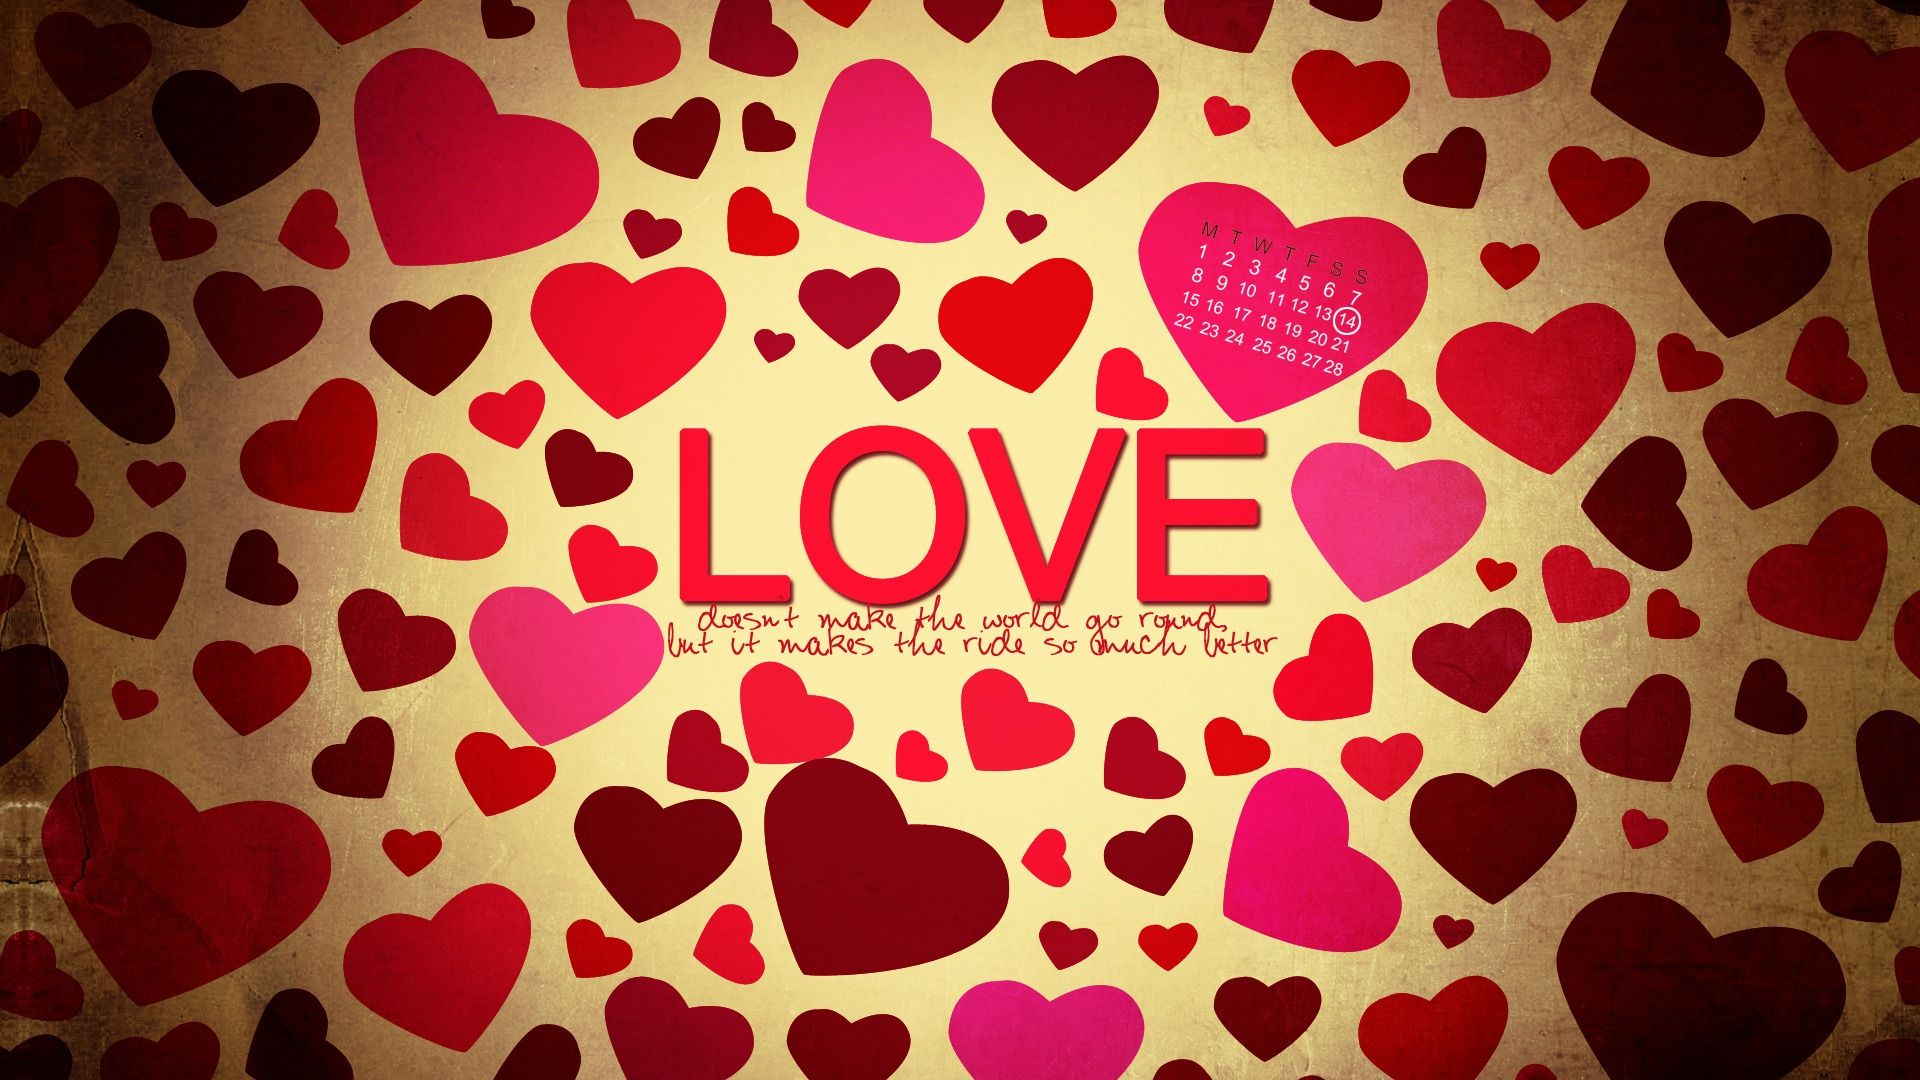 Best Love Wallpapers Dip Compatibilite Astrologique Celebrations Valentine S Day Quotes